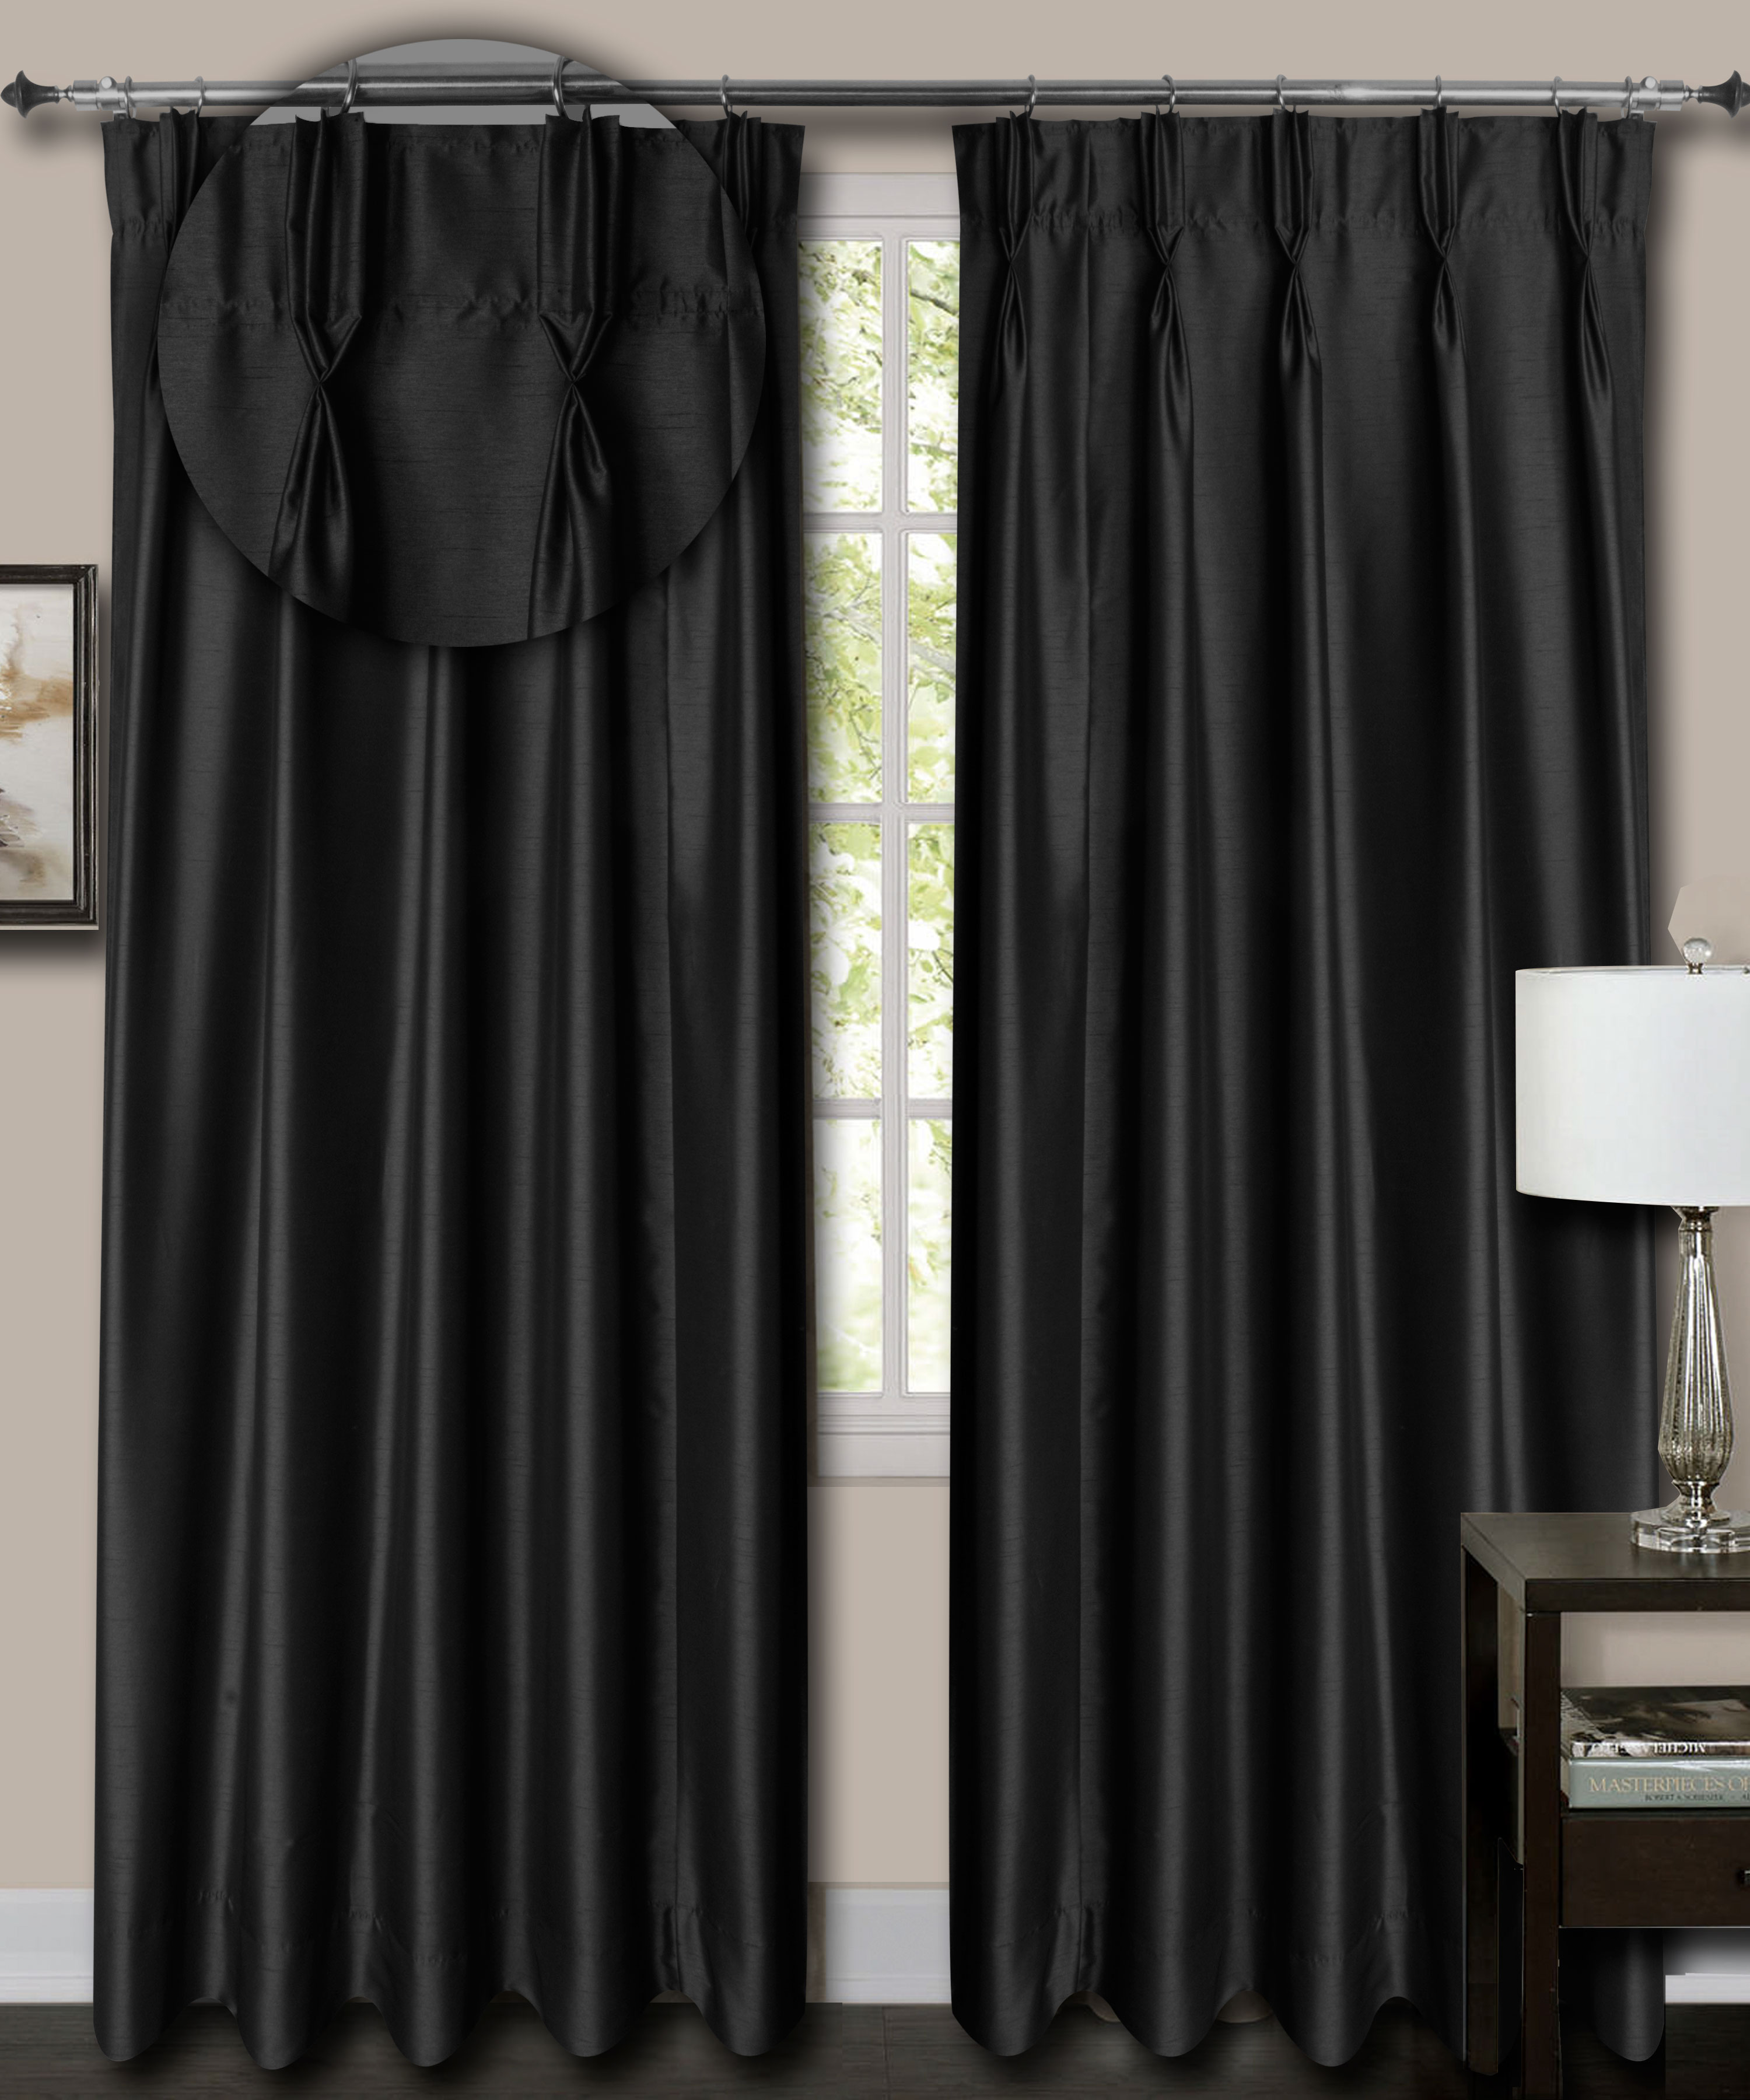 """French Pleat Top Black Faux Silk Dupioni Curtains. (52"""" Wide, 5 Feet Long, Thick Lining)"""